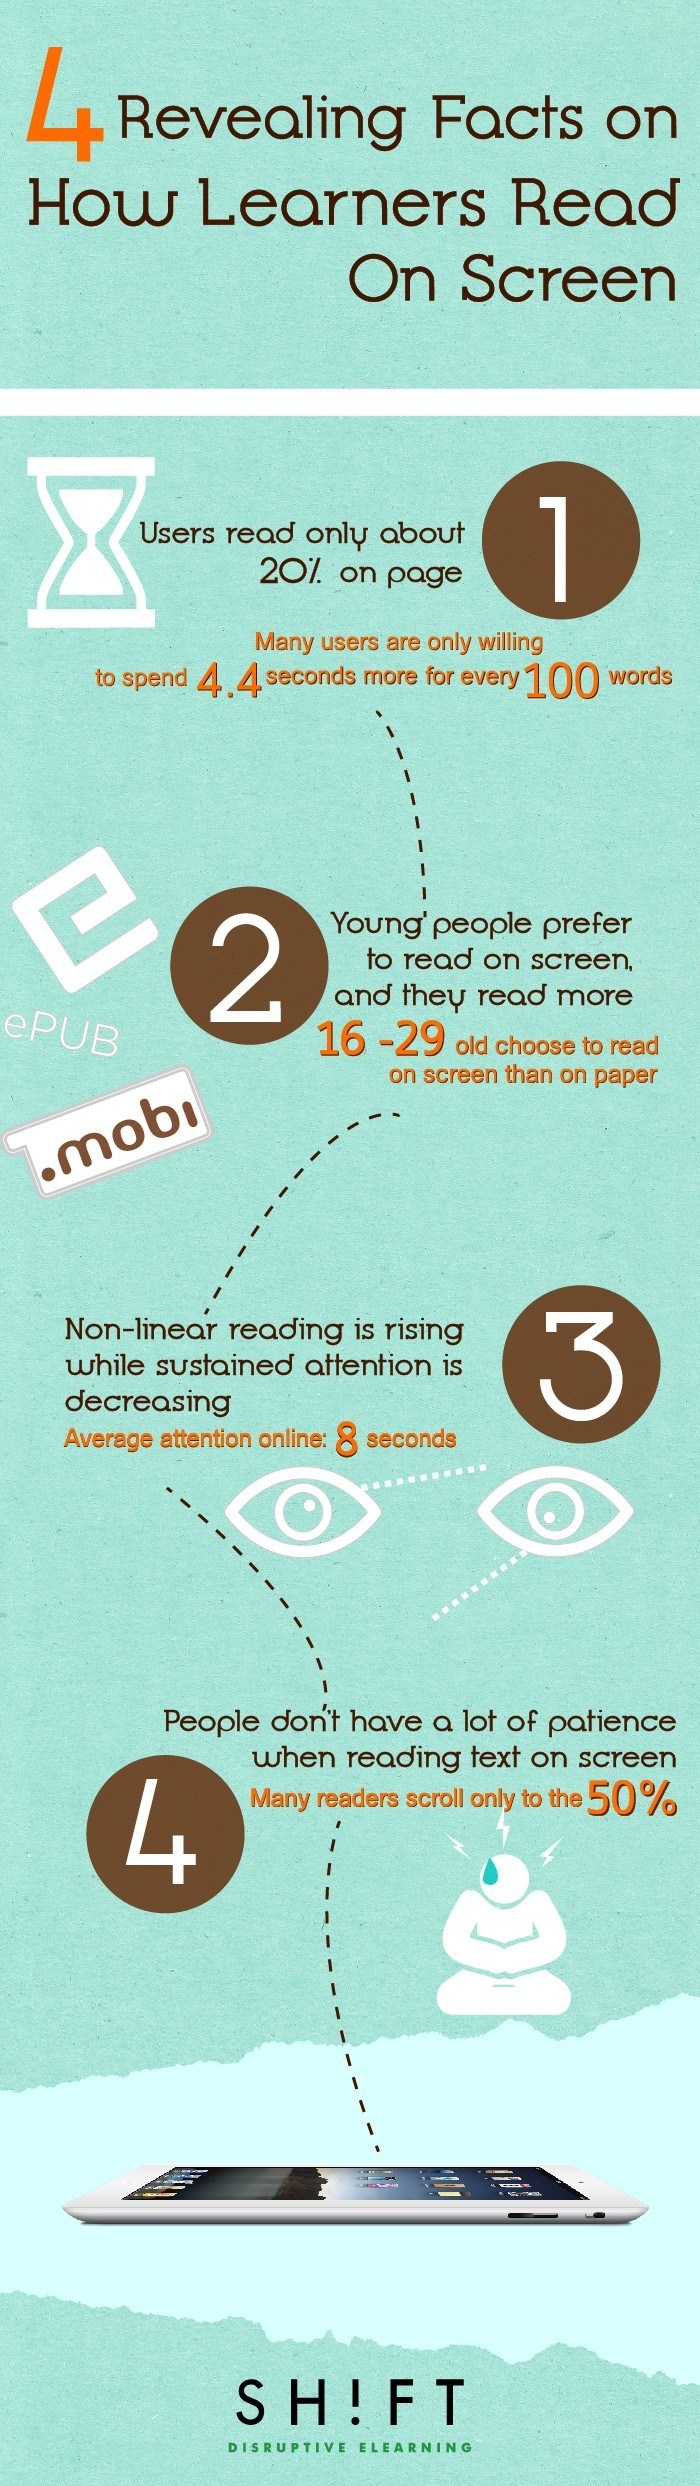 Four Revealing Facts on How Learners Read On Screen [Infographic] thumbnail